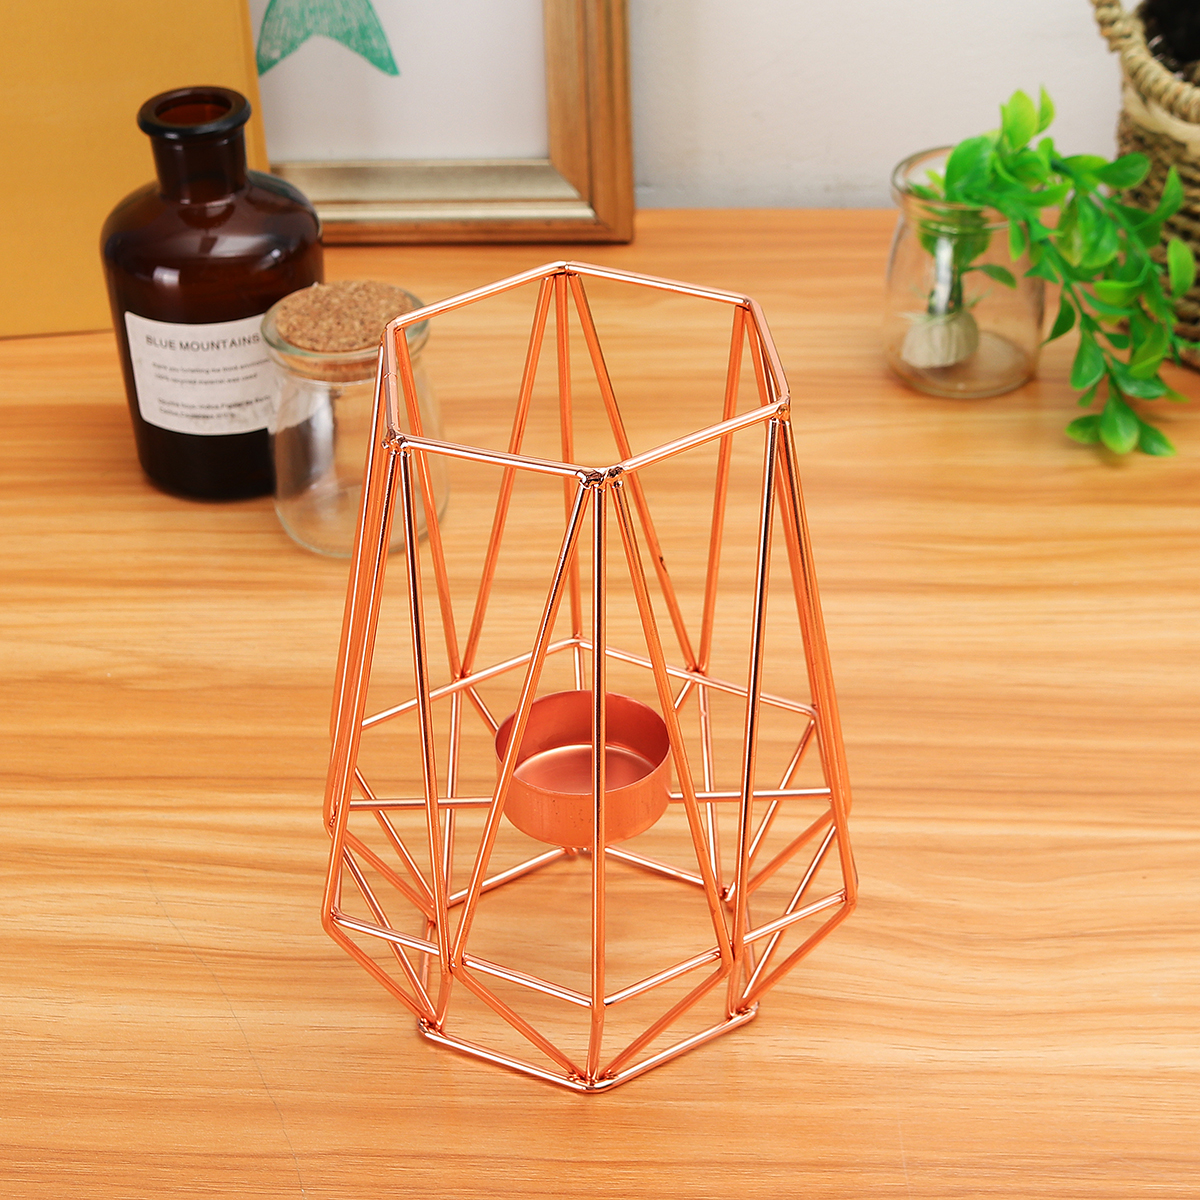 Geometric Candlestick Metal Iron Candle Holder Wedding Home Decorations Nordic Style Alexnld Com